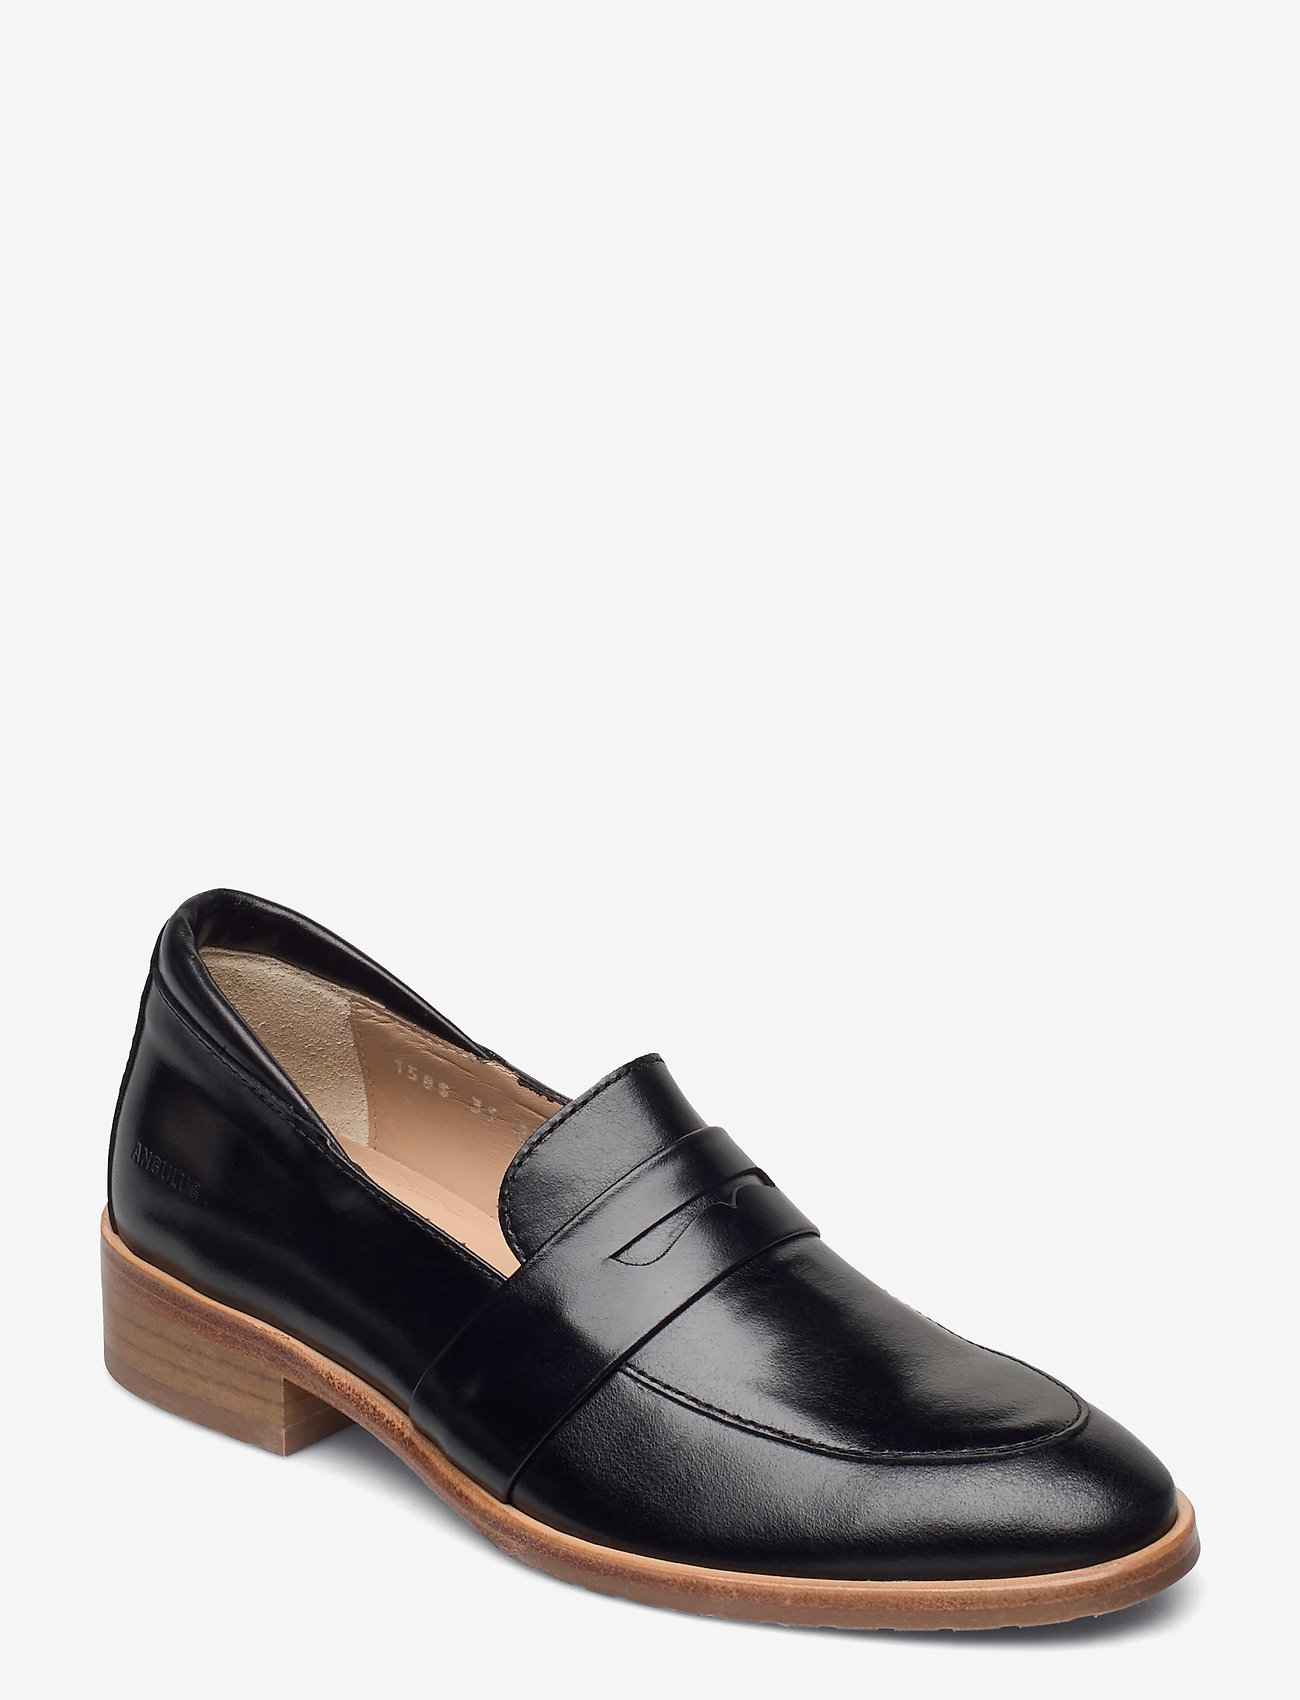 ANGULUS - Loafer - flat - loafers - 1835 black - 0